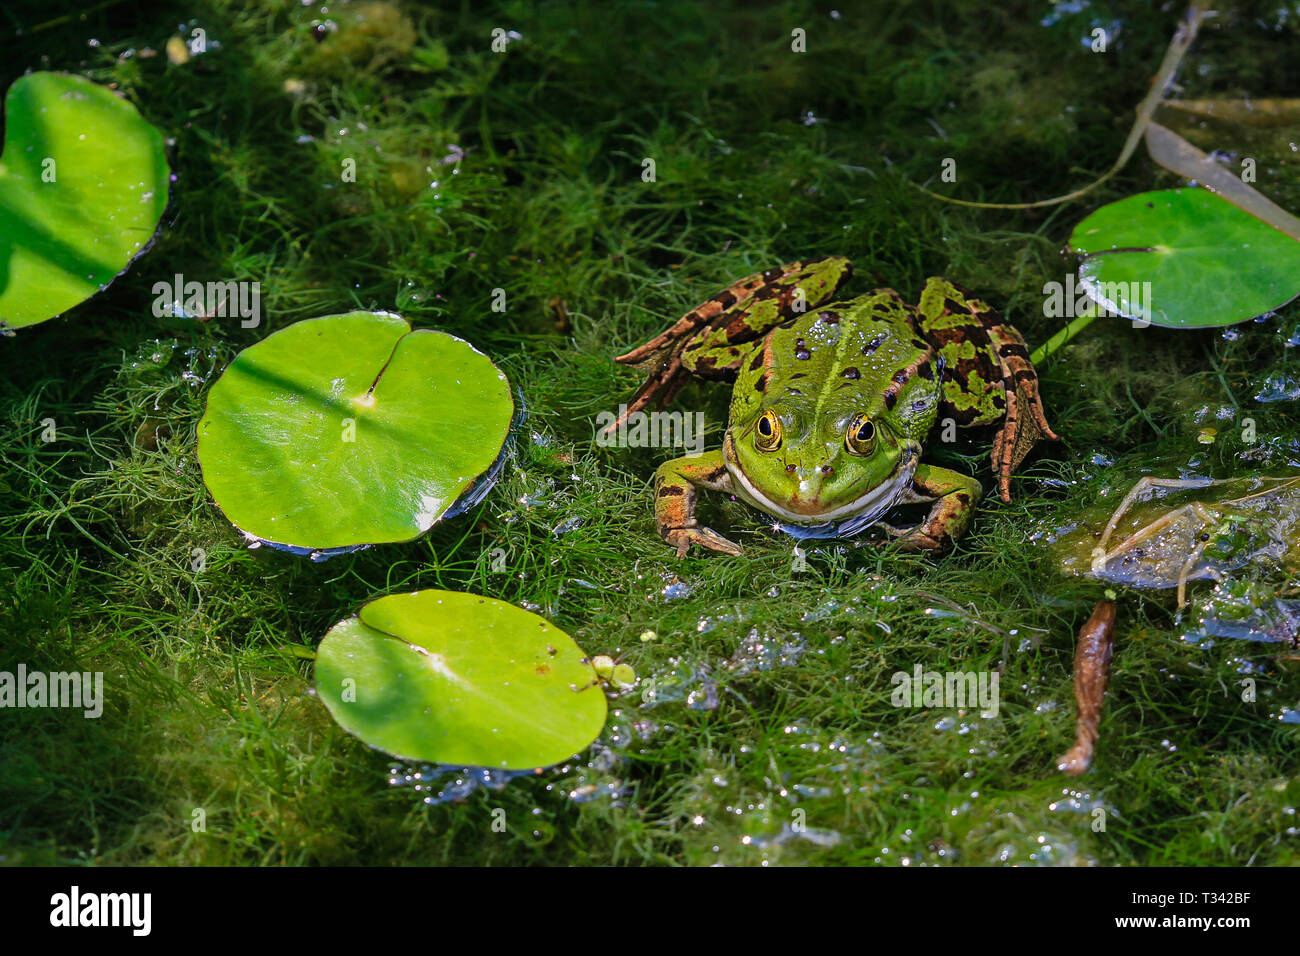 common water frog between algae and water lillies - Stock Image